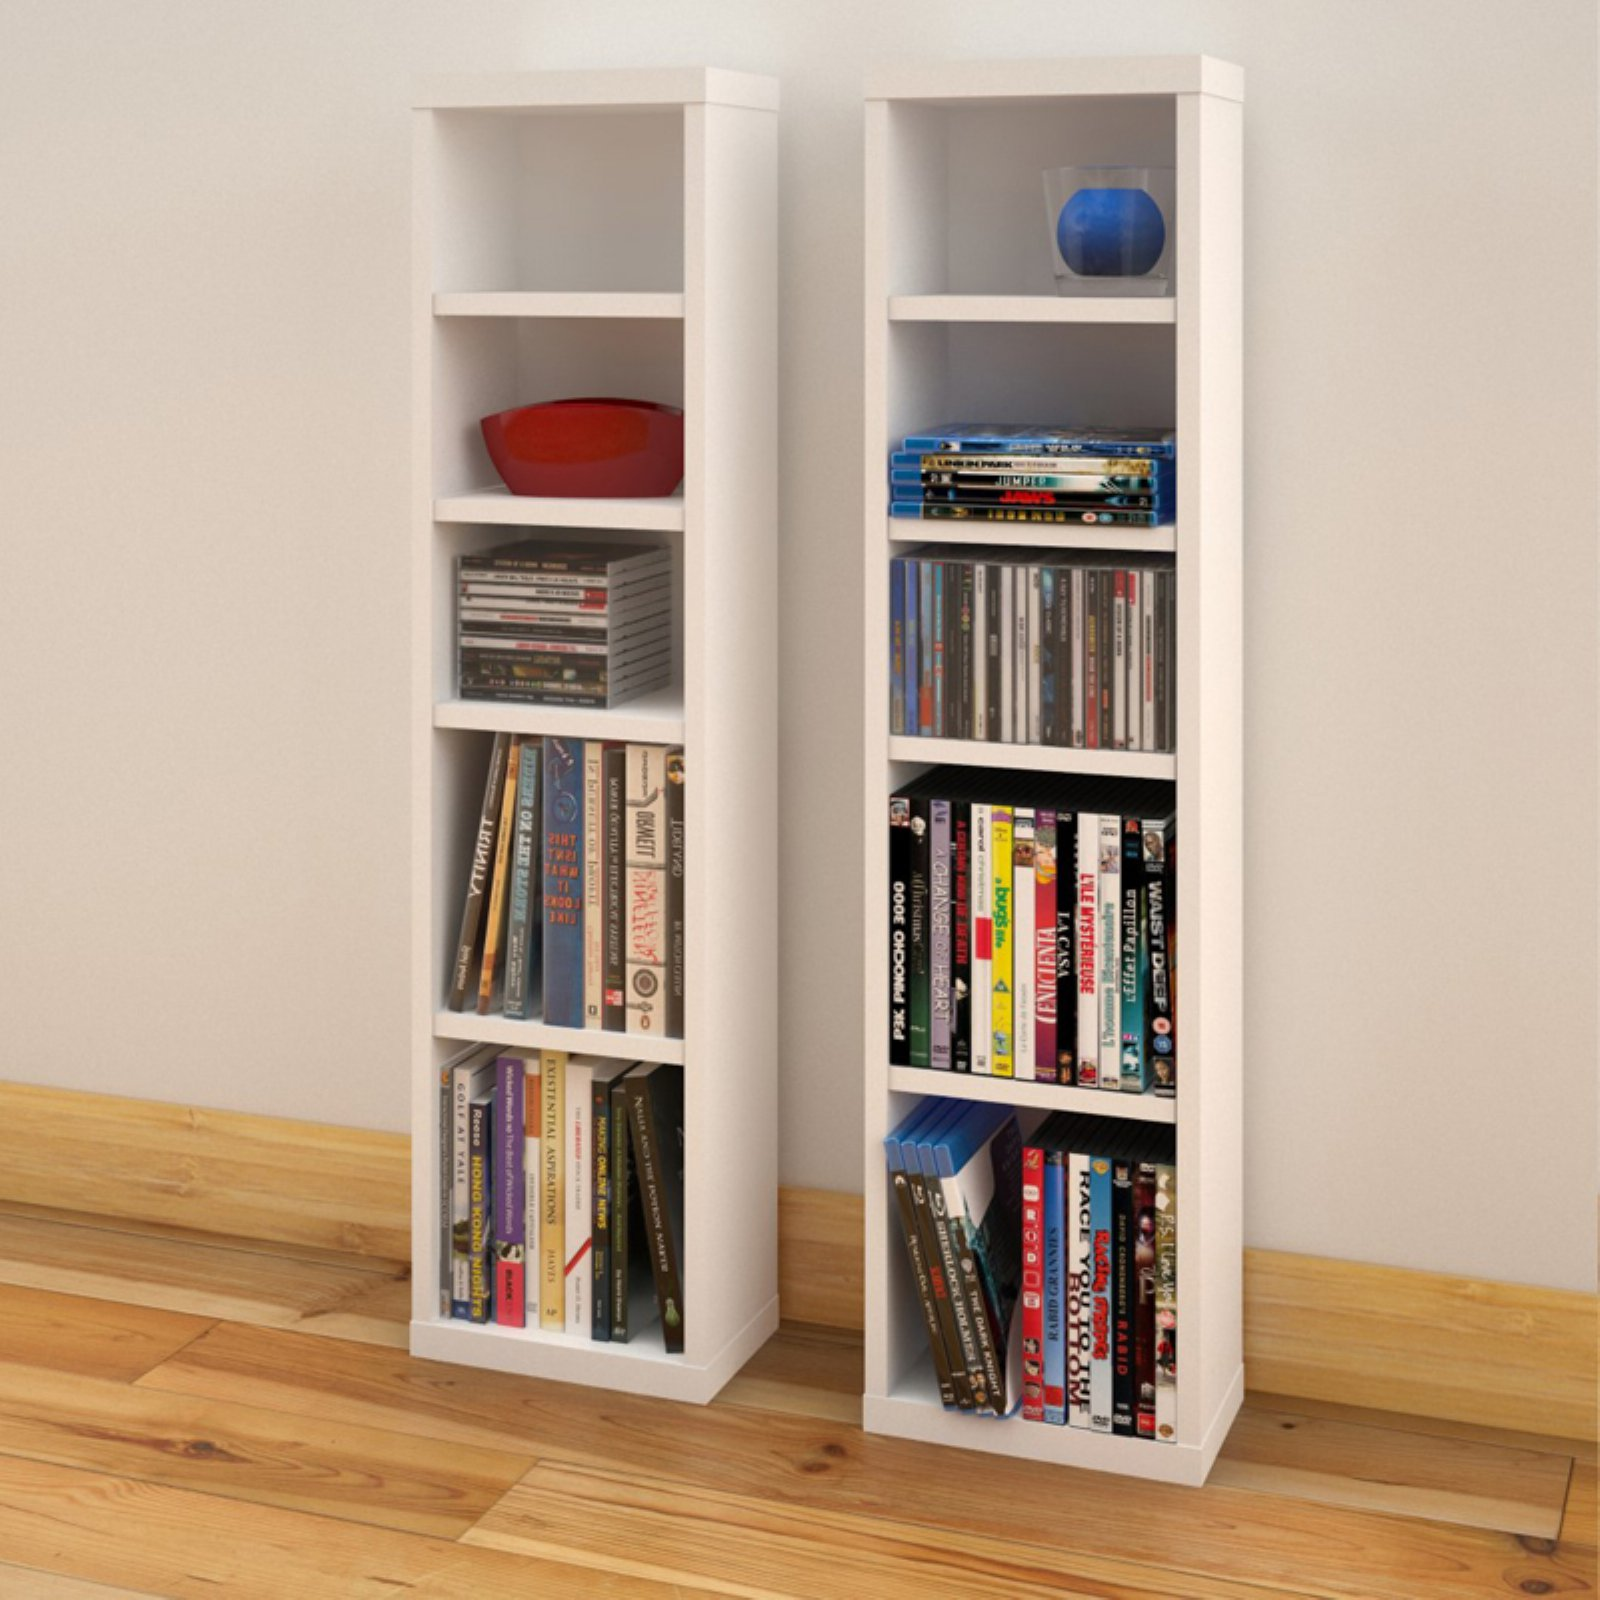 Liber-T 4-Shelf Modular CD / DVD Storage Towers, Set of 2, White